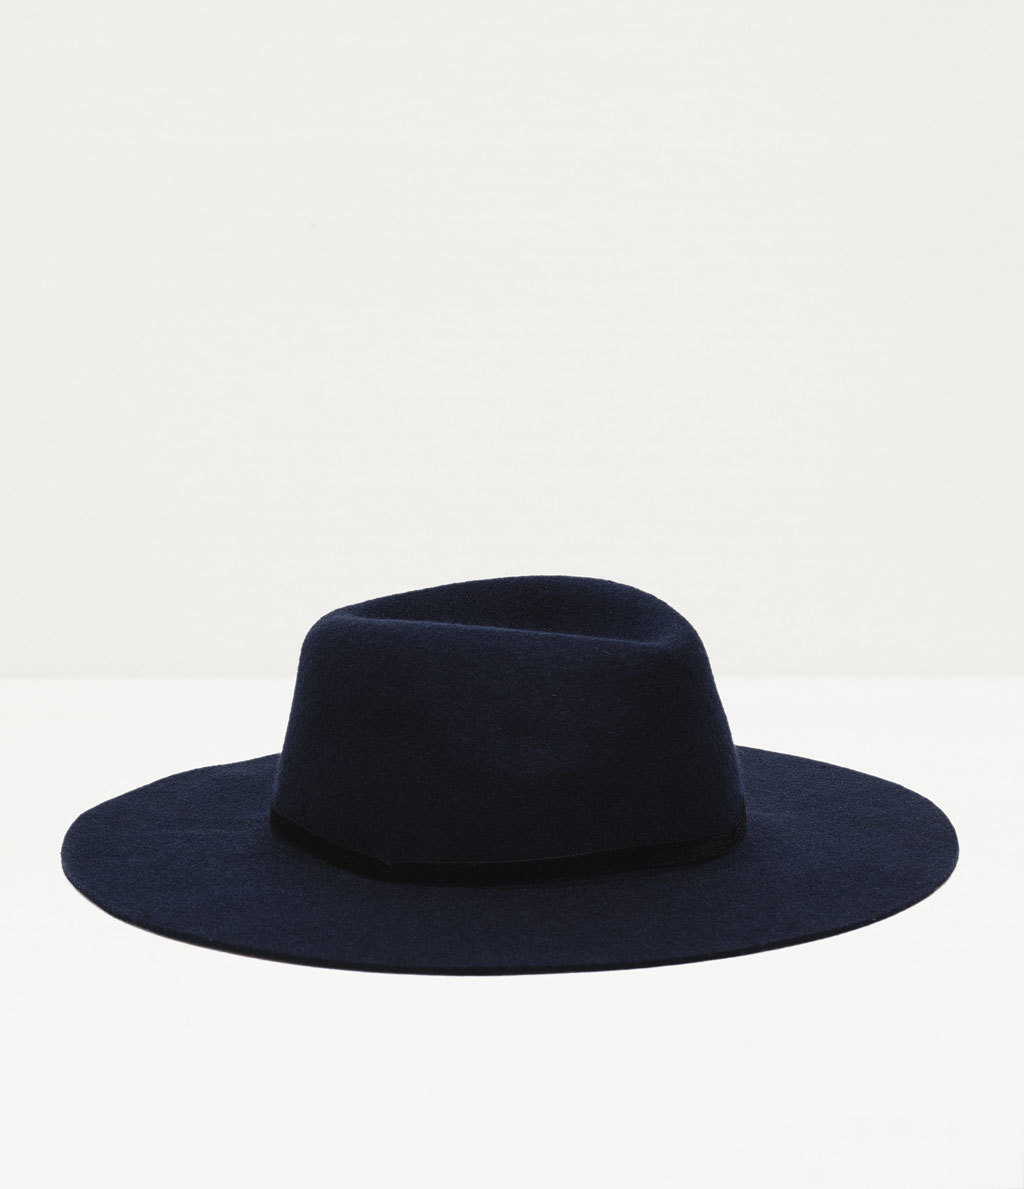 Wool Hat - predominant colour: black; occasions: casual; type of pattern: standard; style: fedora; size: large; material: felt; pattern: plain; season: a/w 2015; wardrobe: basic